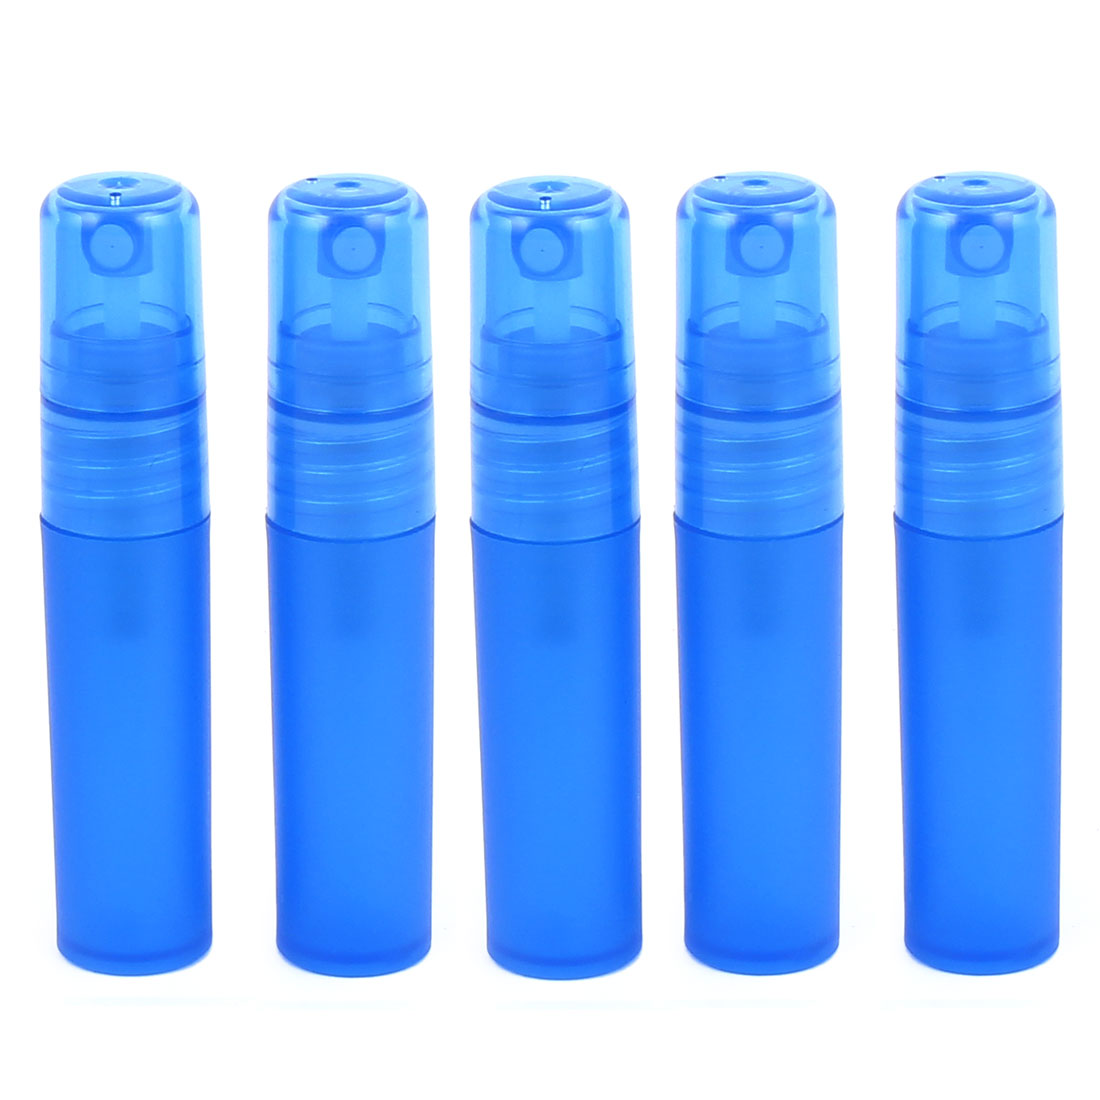 5pcs Dark Blue Plastic Empty Cosmetic Water Liquid Spray Bottle Perfume Container Holder 5ml for Lady